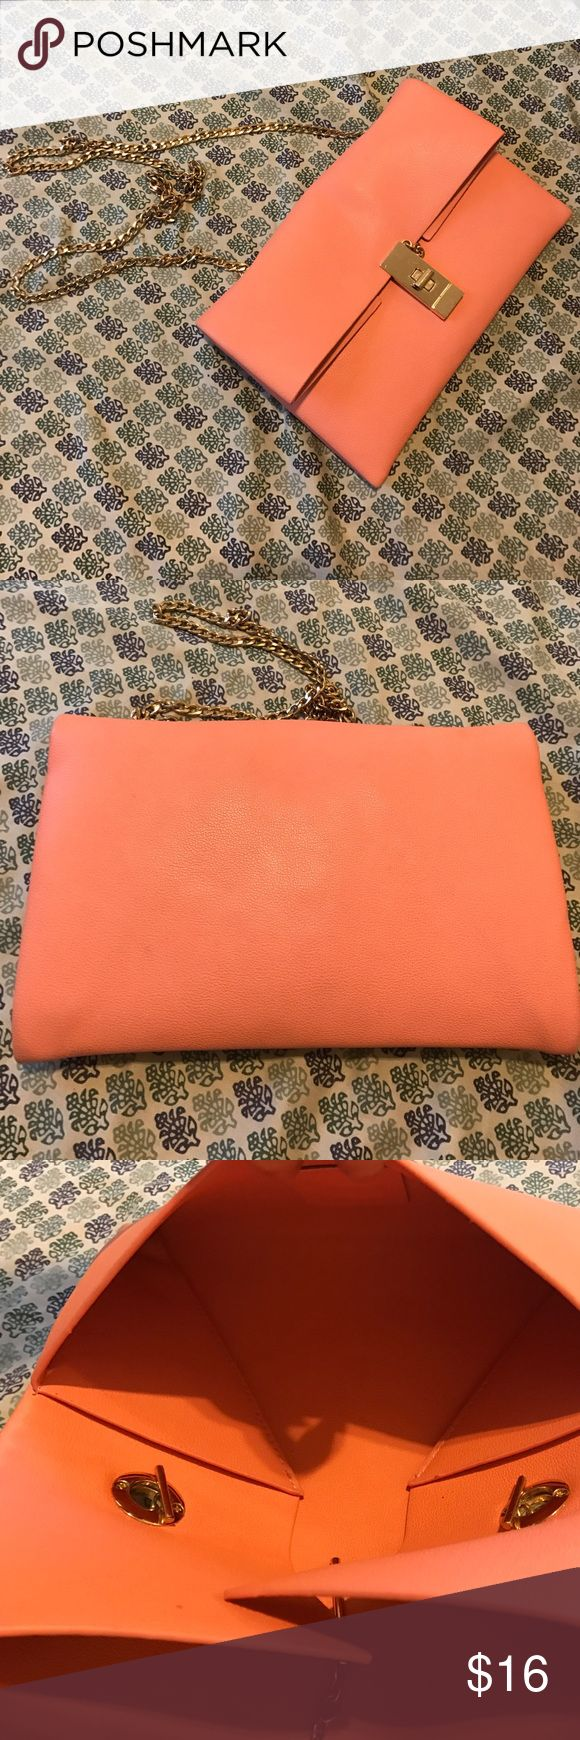 Peach clutch with gold chain Purchased at local boutique. No brand on item. Man made materials. Almost perfect condition. Inside flawless. Tiny bit of wear on the back, smaller than a dime. Bags Clutches & Wristlets